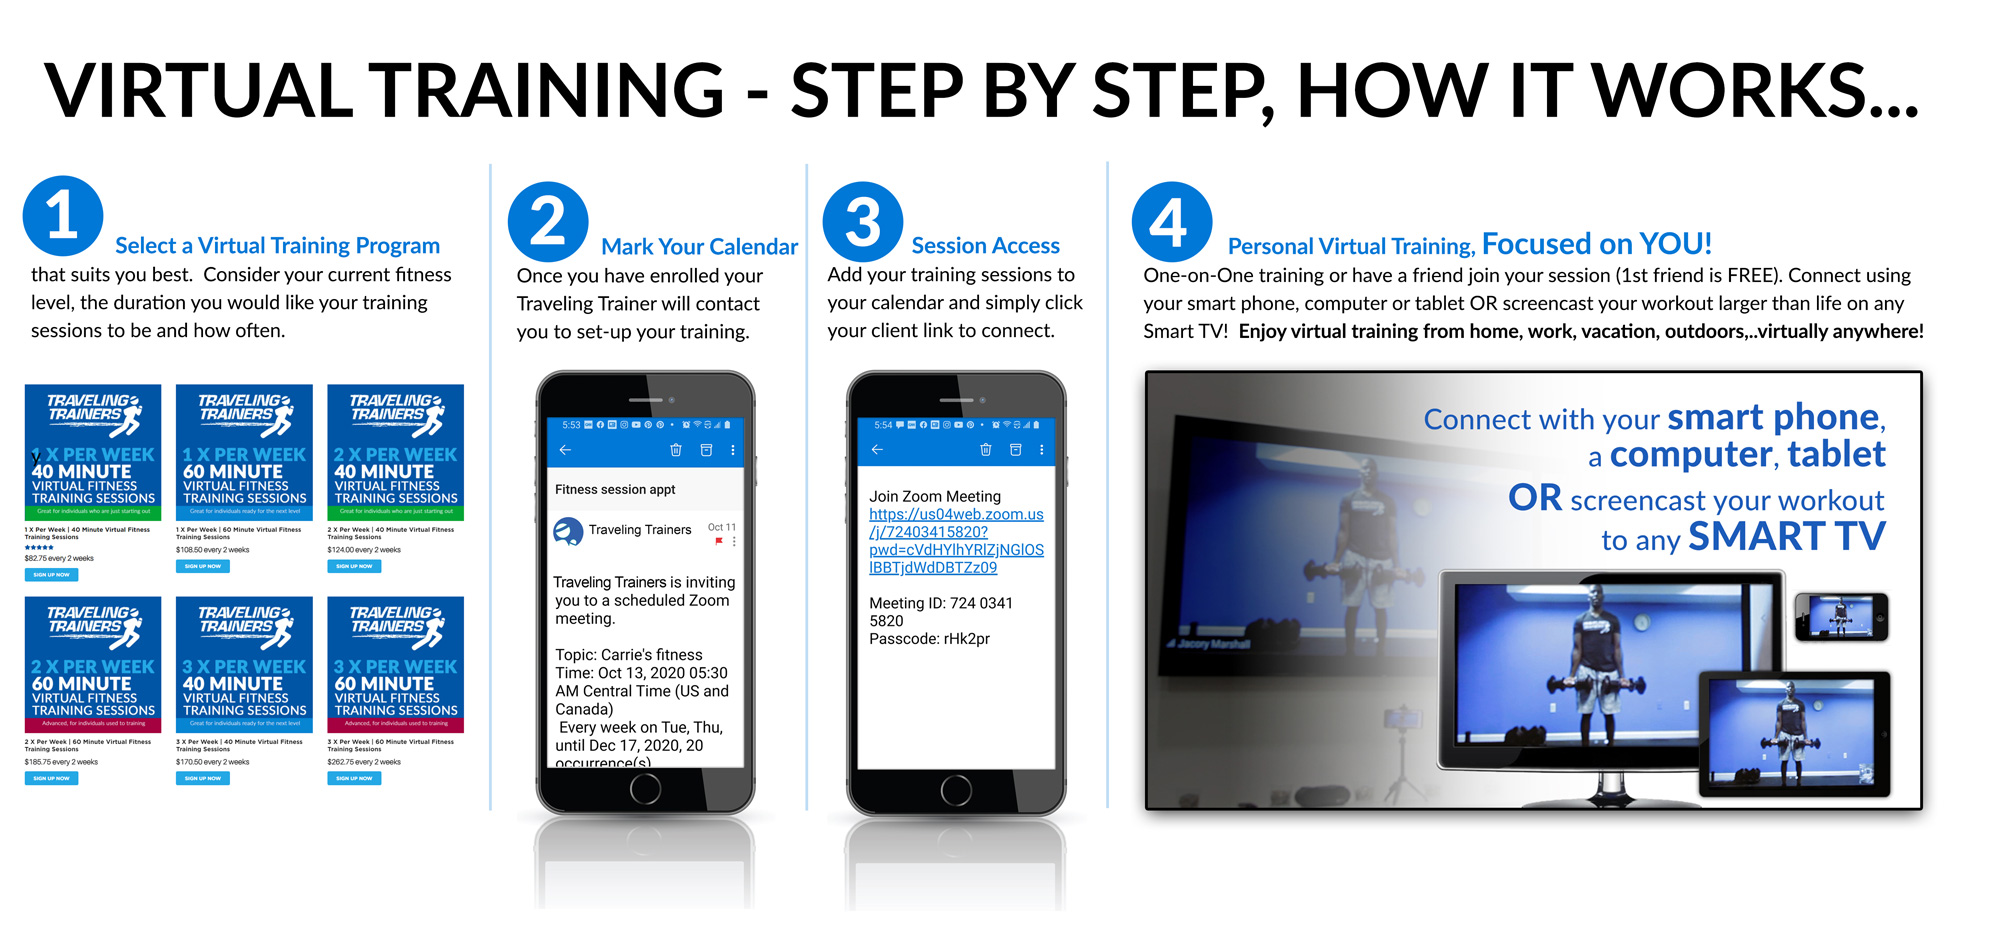 Virtual Fitness Training - Workout from Anywhere, One-on-One Training